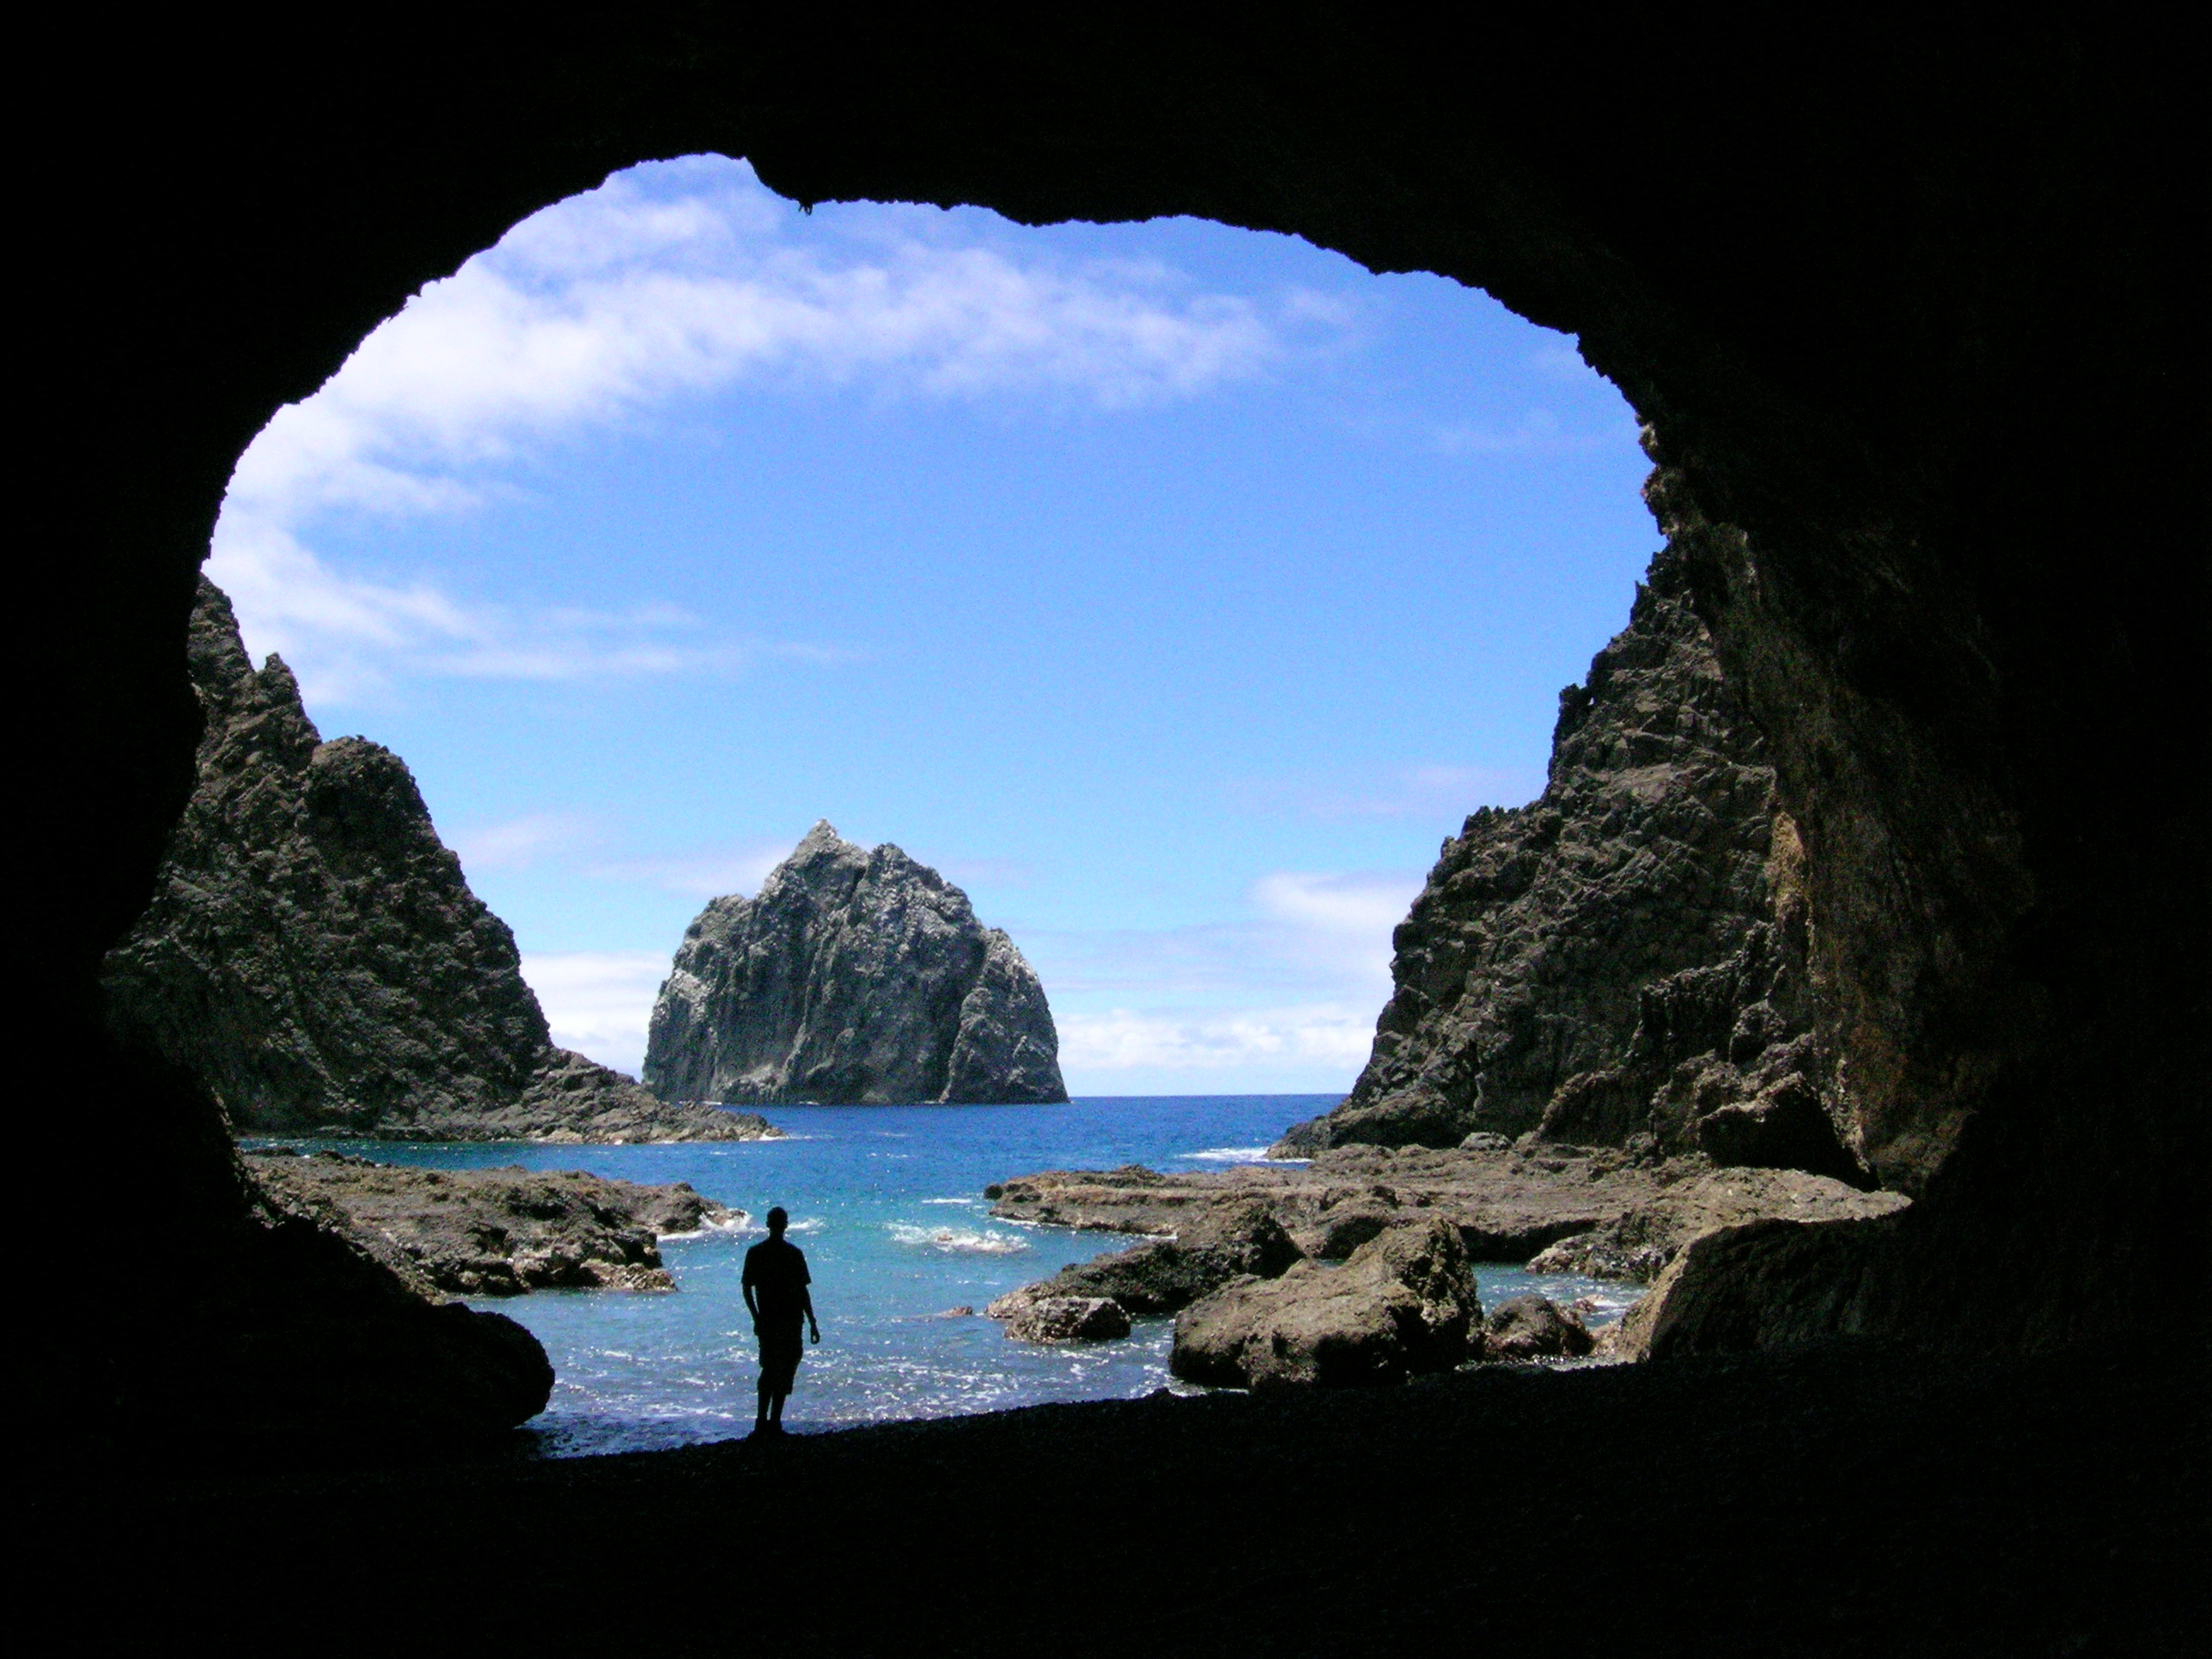 Black Rocks cave by Ed Thorpe for St. Helena Tourism